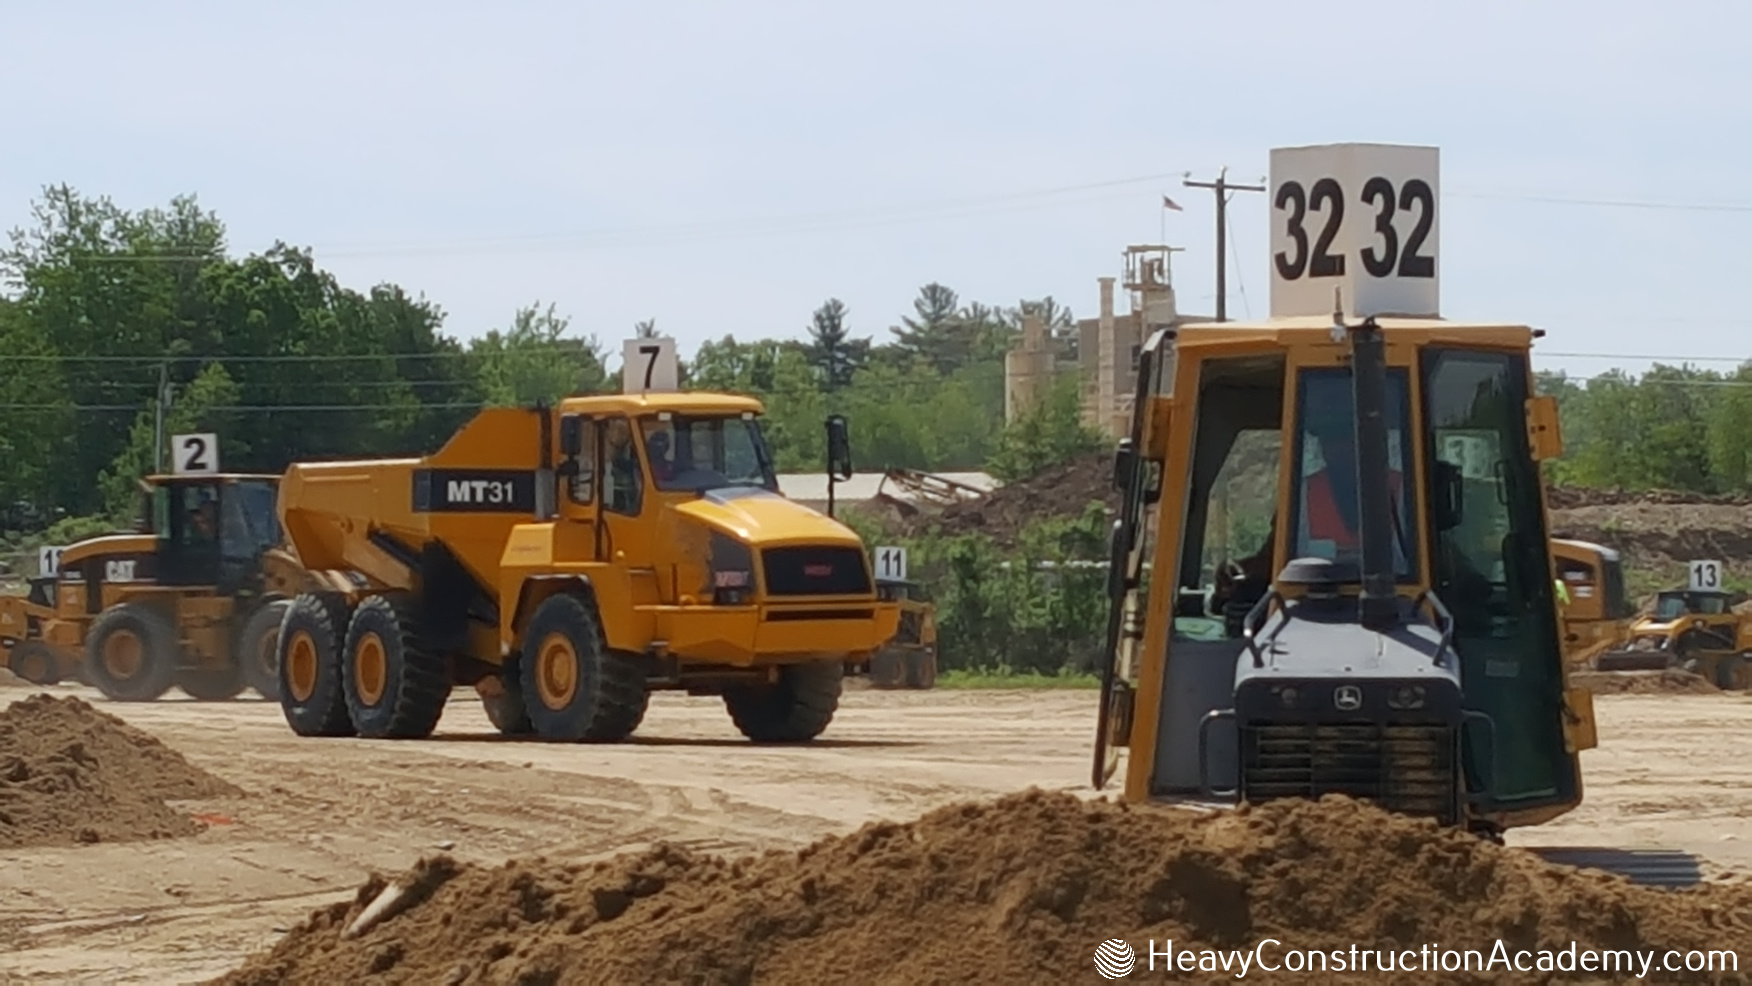 view of heavy equipment - photo #21